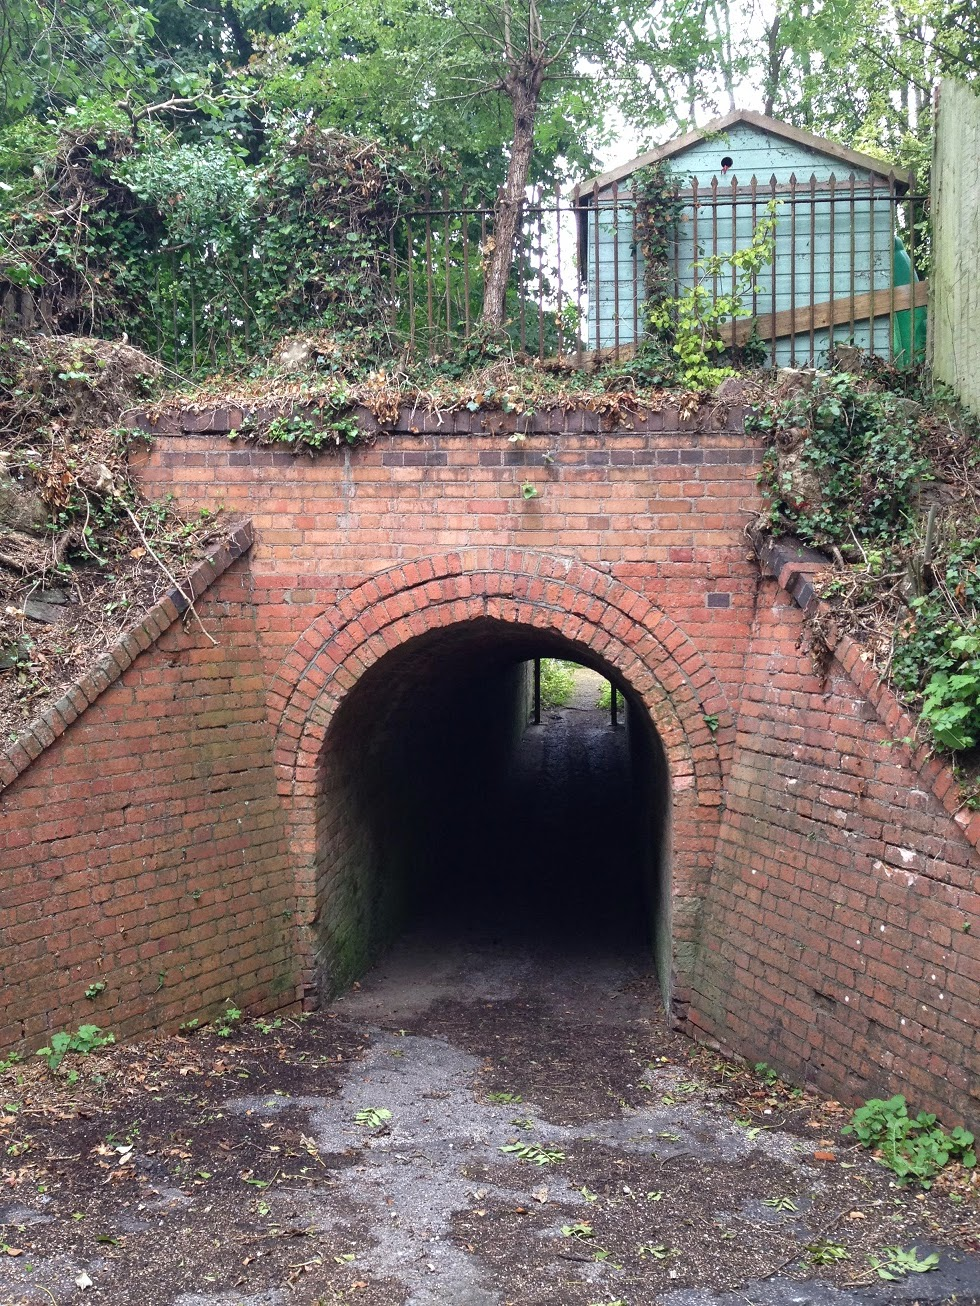 Pedestrian walkway under the former railway line, near Whitchurch Town station